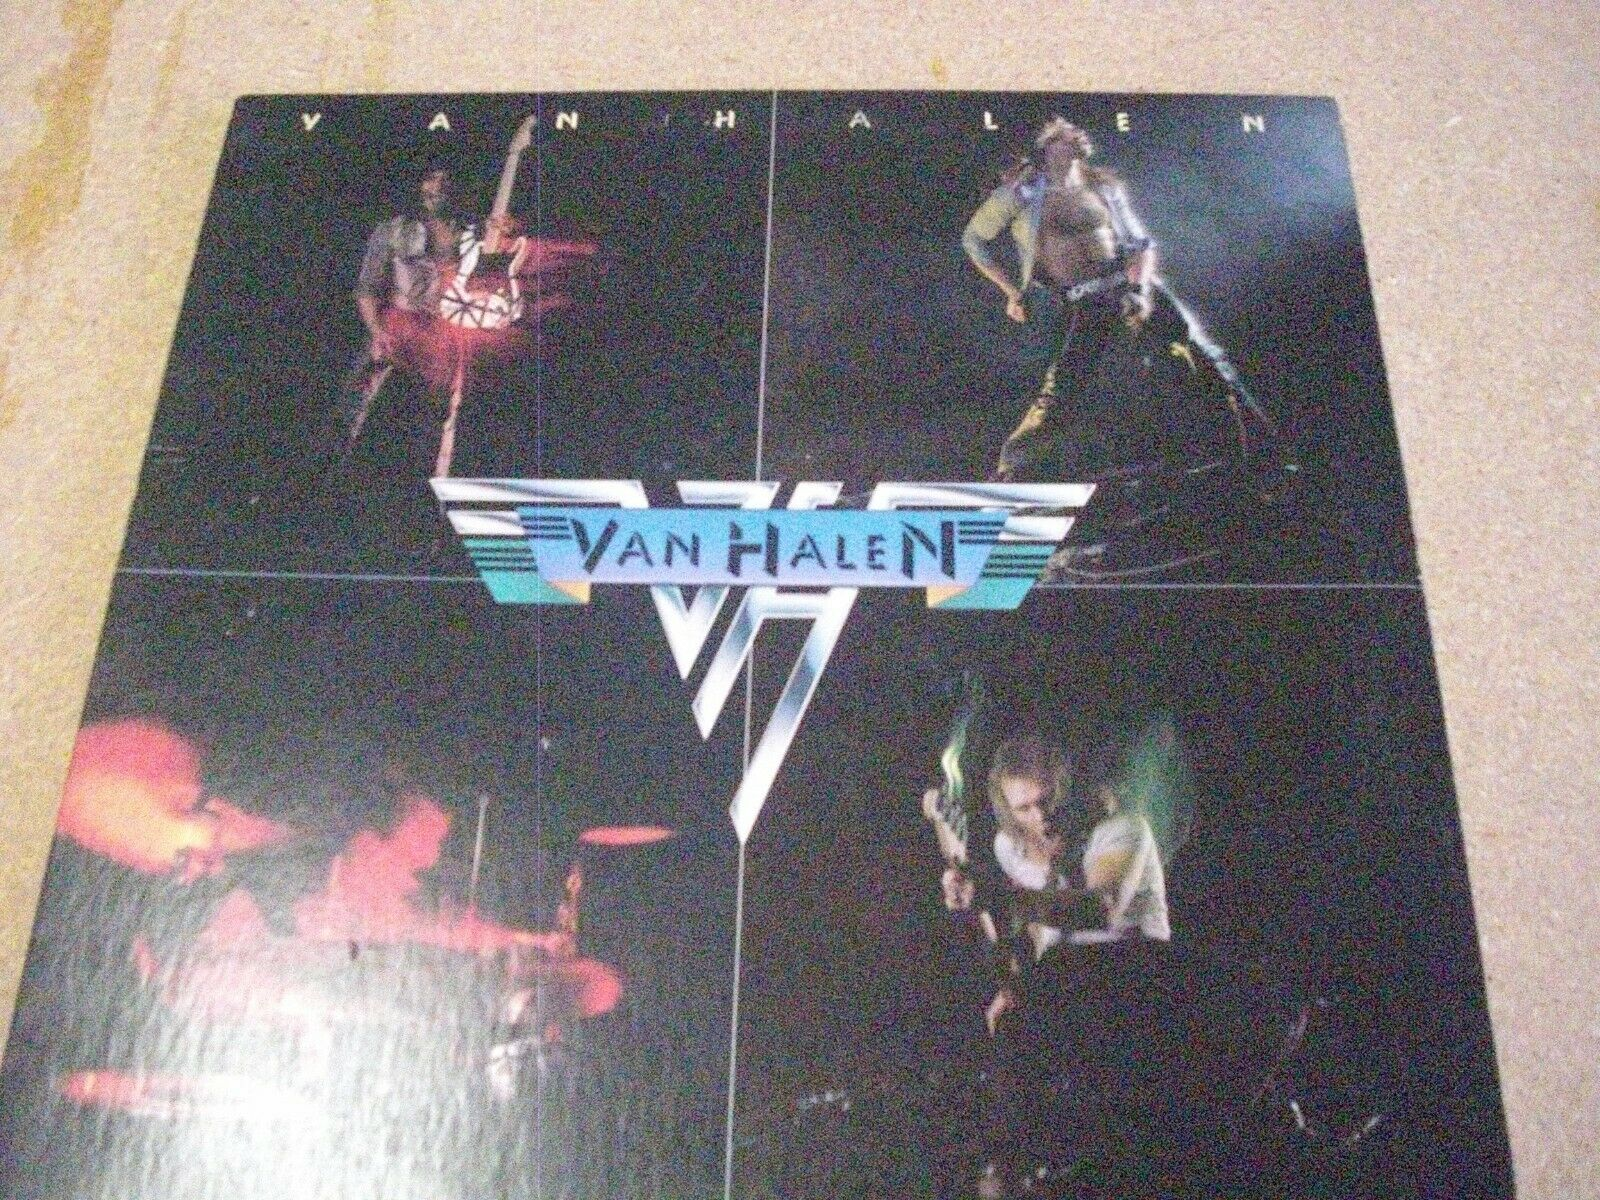 Van Halen - Van Halen - Runnin With The Devil - $10.50